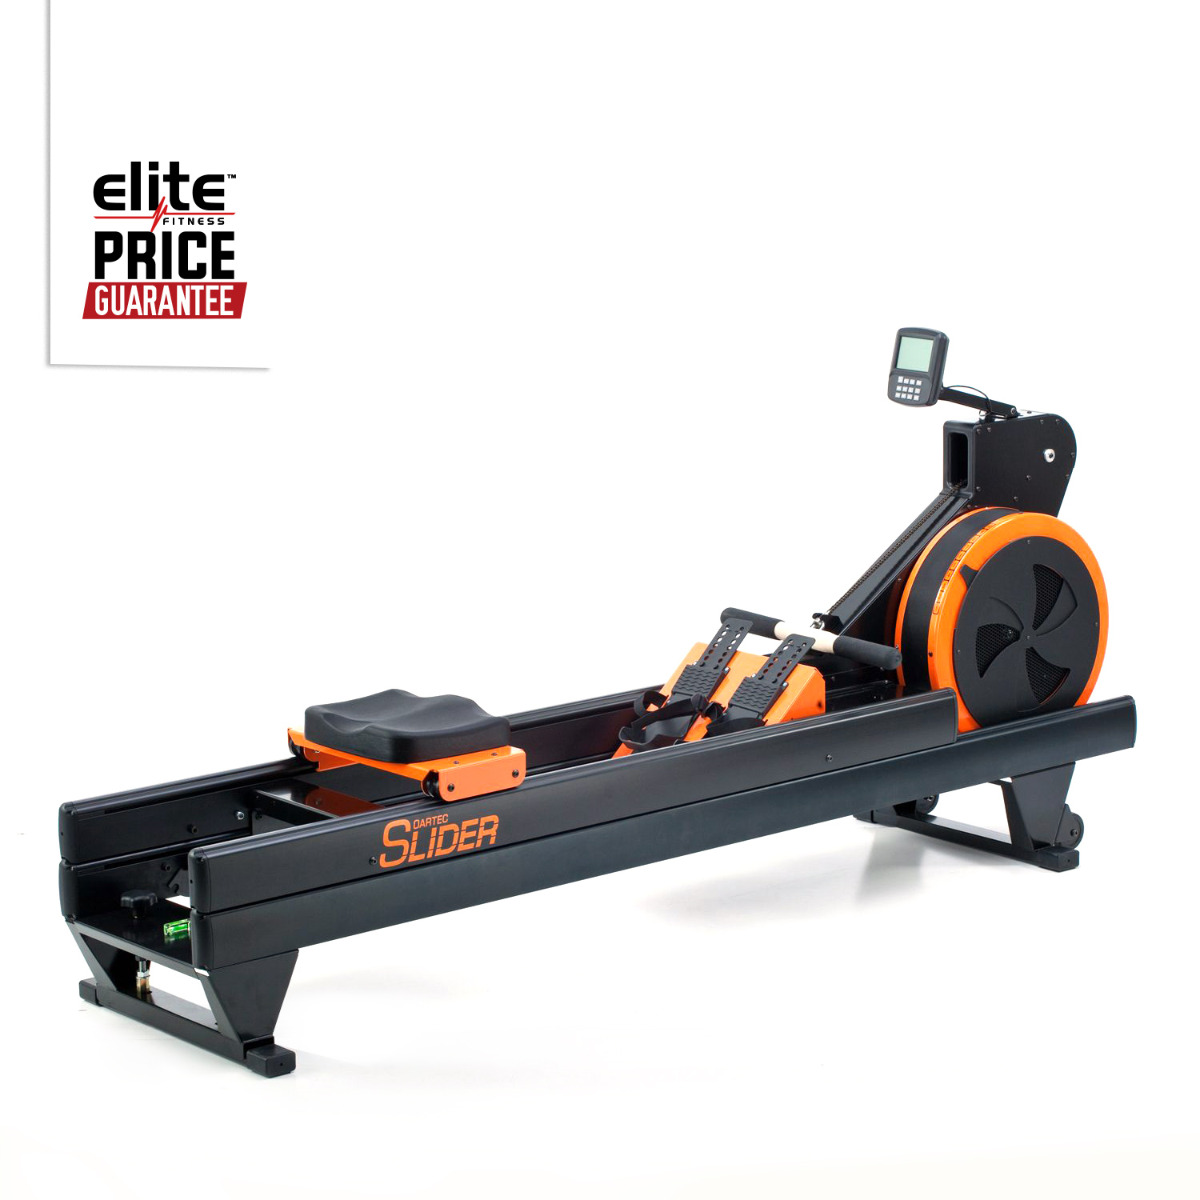 SLIDER ROWING MACHINE